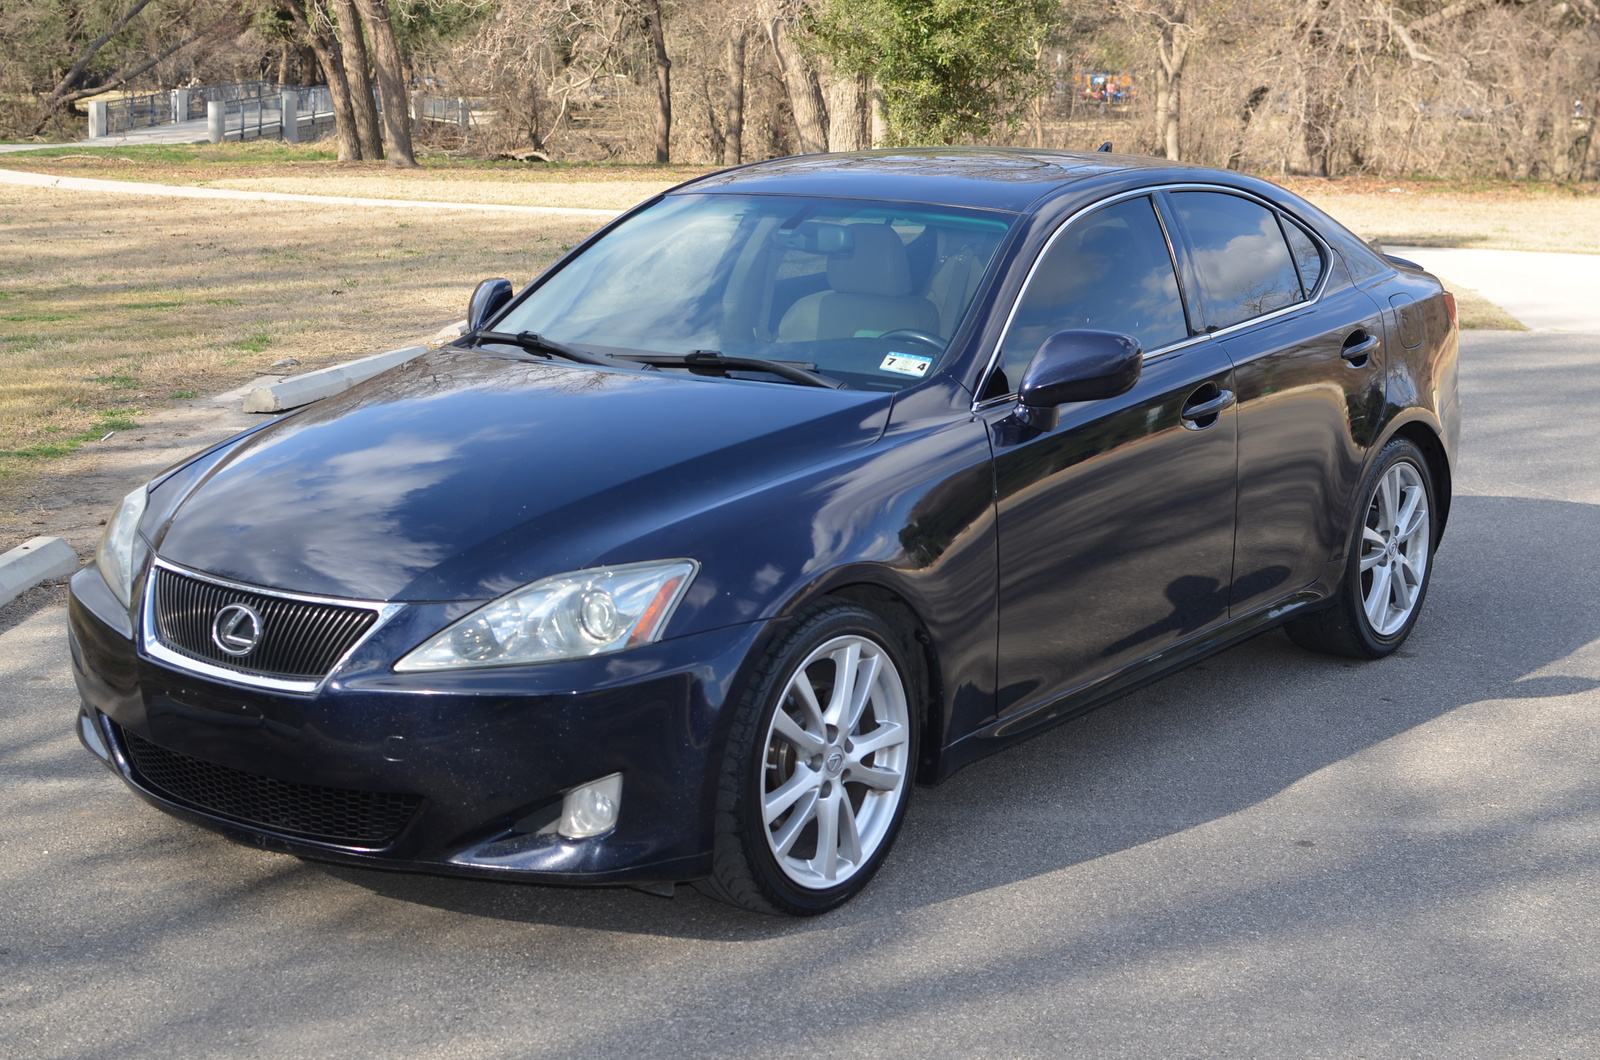 2007 lexus rx reviews ratings prices consumer reports autos post. Black Bedroom Furniture Sets. Home Design Ideas